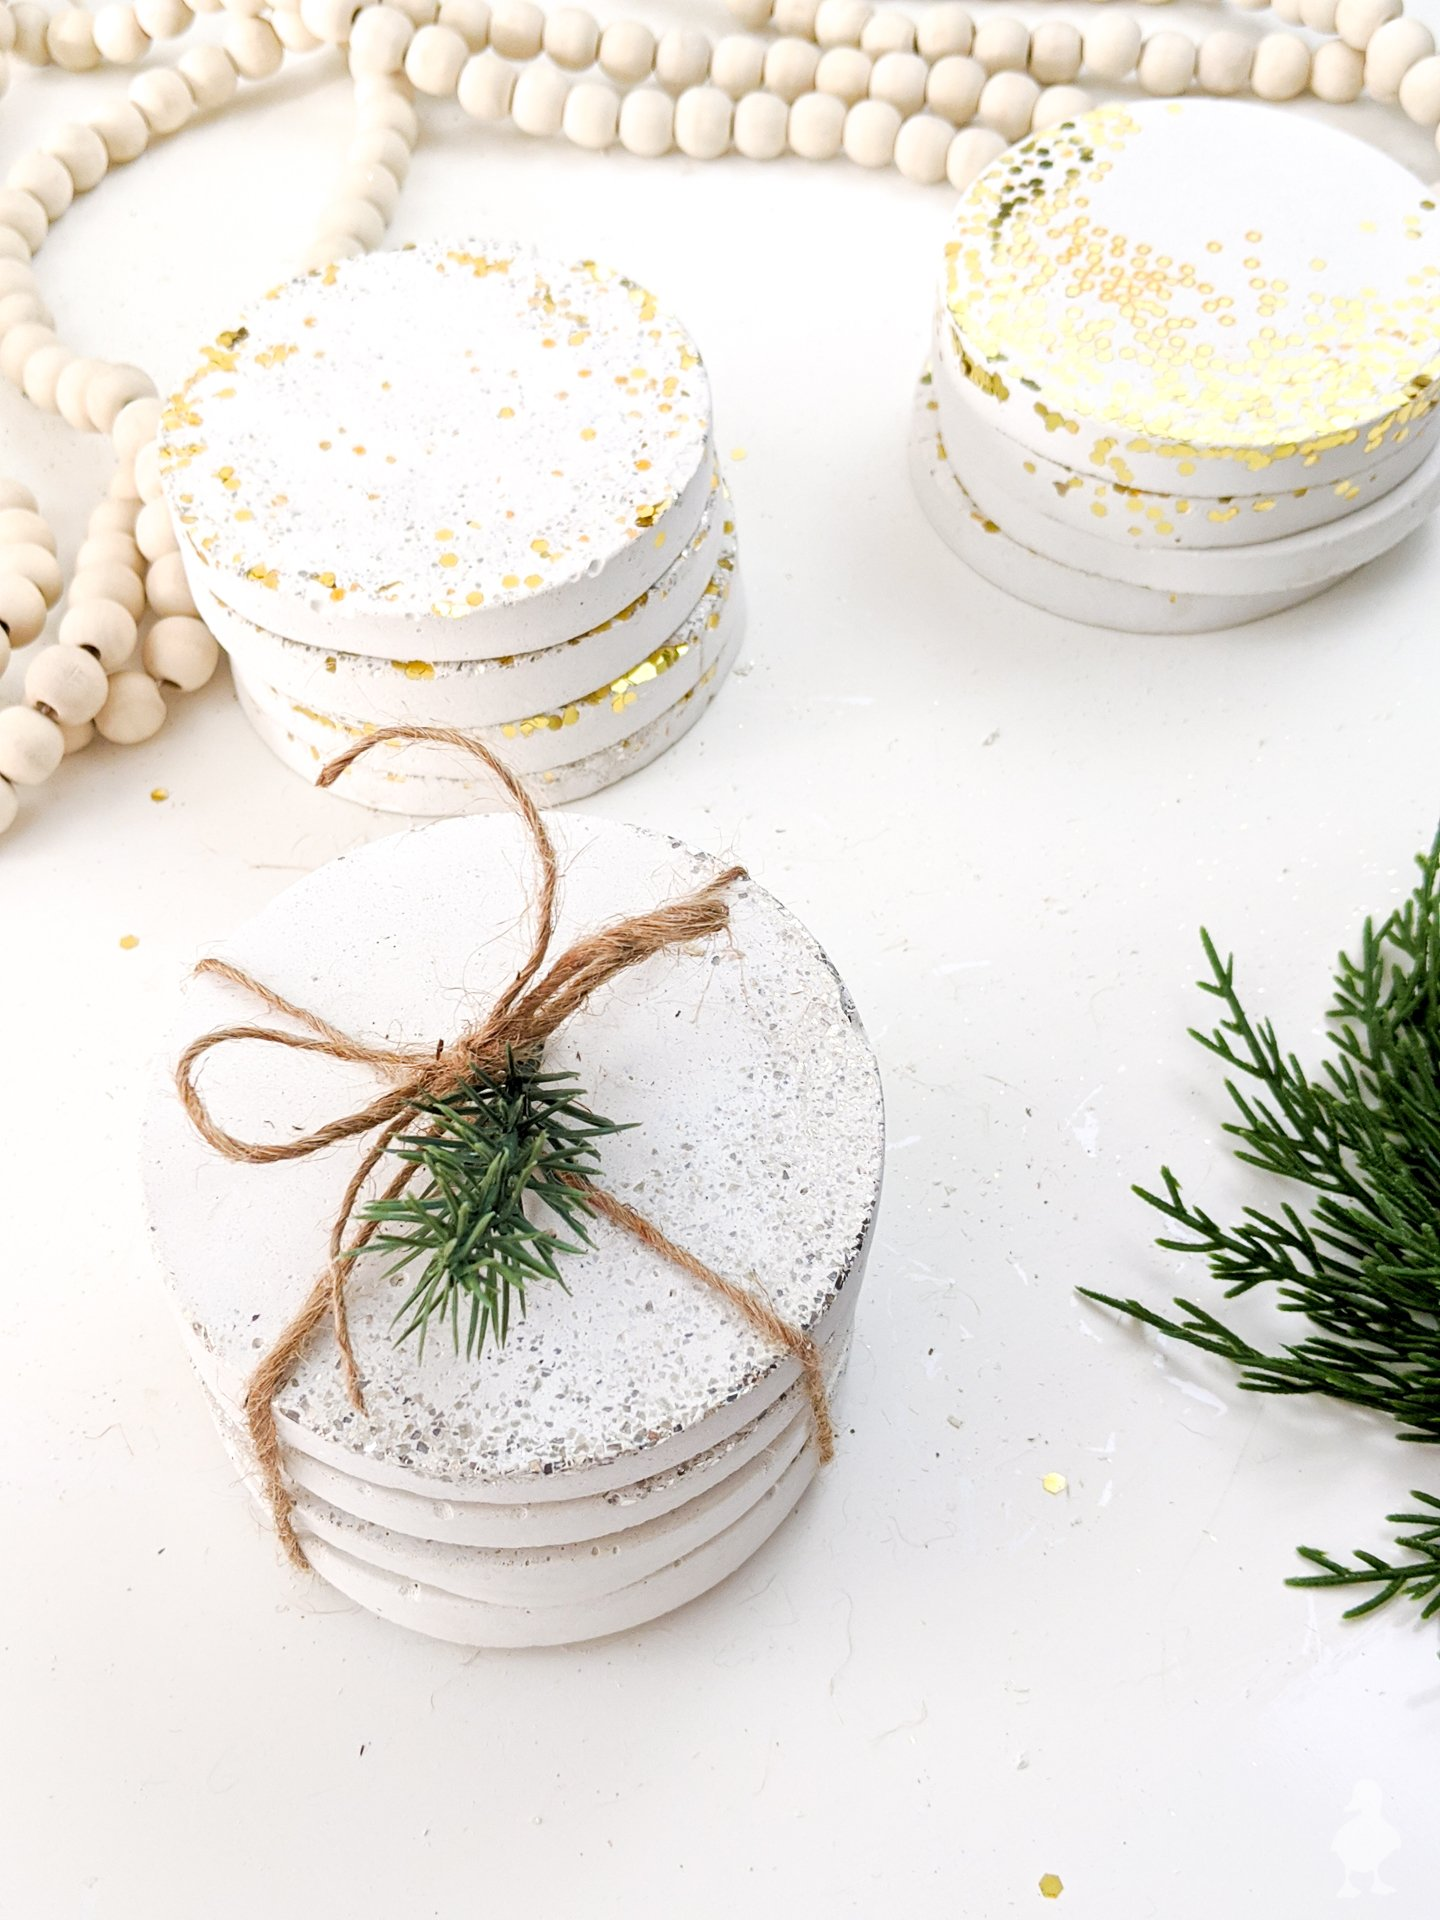 DIY glitter and confetti white concrete sets - made 3 ways with inexpensive ingredients that are easy to find at your local craft store. Get the full how-to and make in an afternoon - excellent kids craft too #whiteconcrete #diycoasters #glitter #confetti #newyears #partydecoration #hostessgift #neighborgift